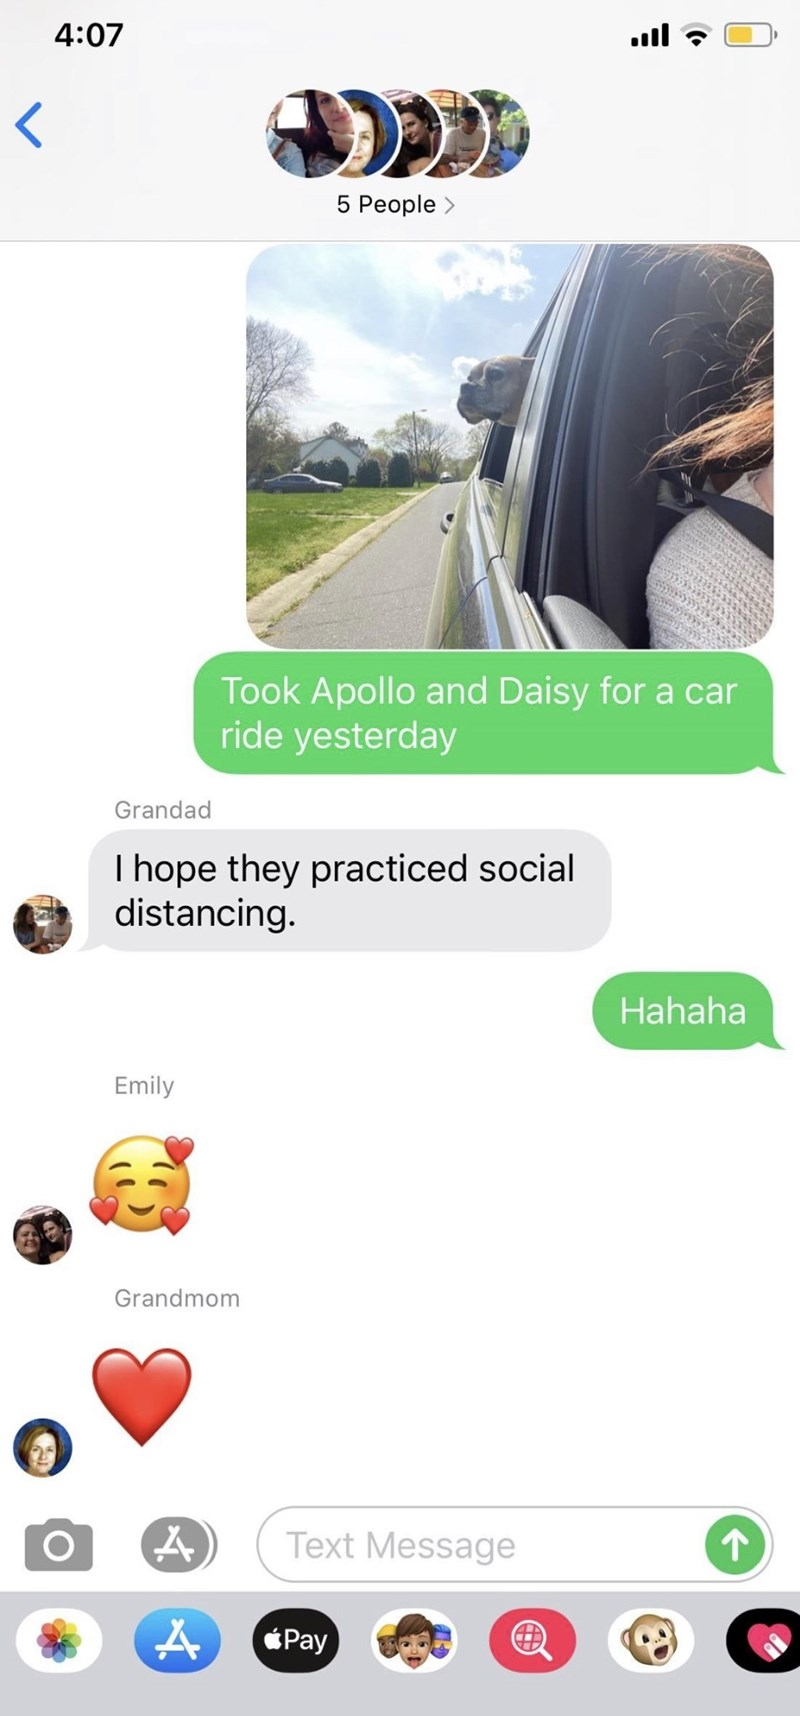 Product - 4:07 ull 5 People > Took Apollo and Daisy for a car ride yesterday Grandad I hope they practiced social distancing. Hahaha Emily Grandmom Text Message Pay